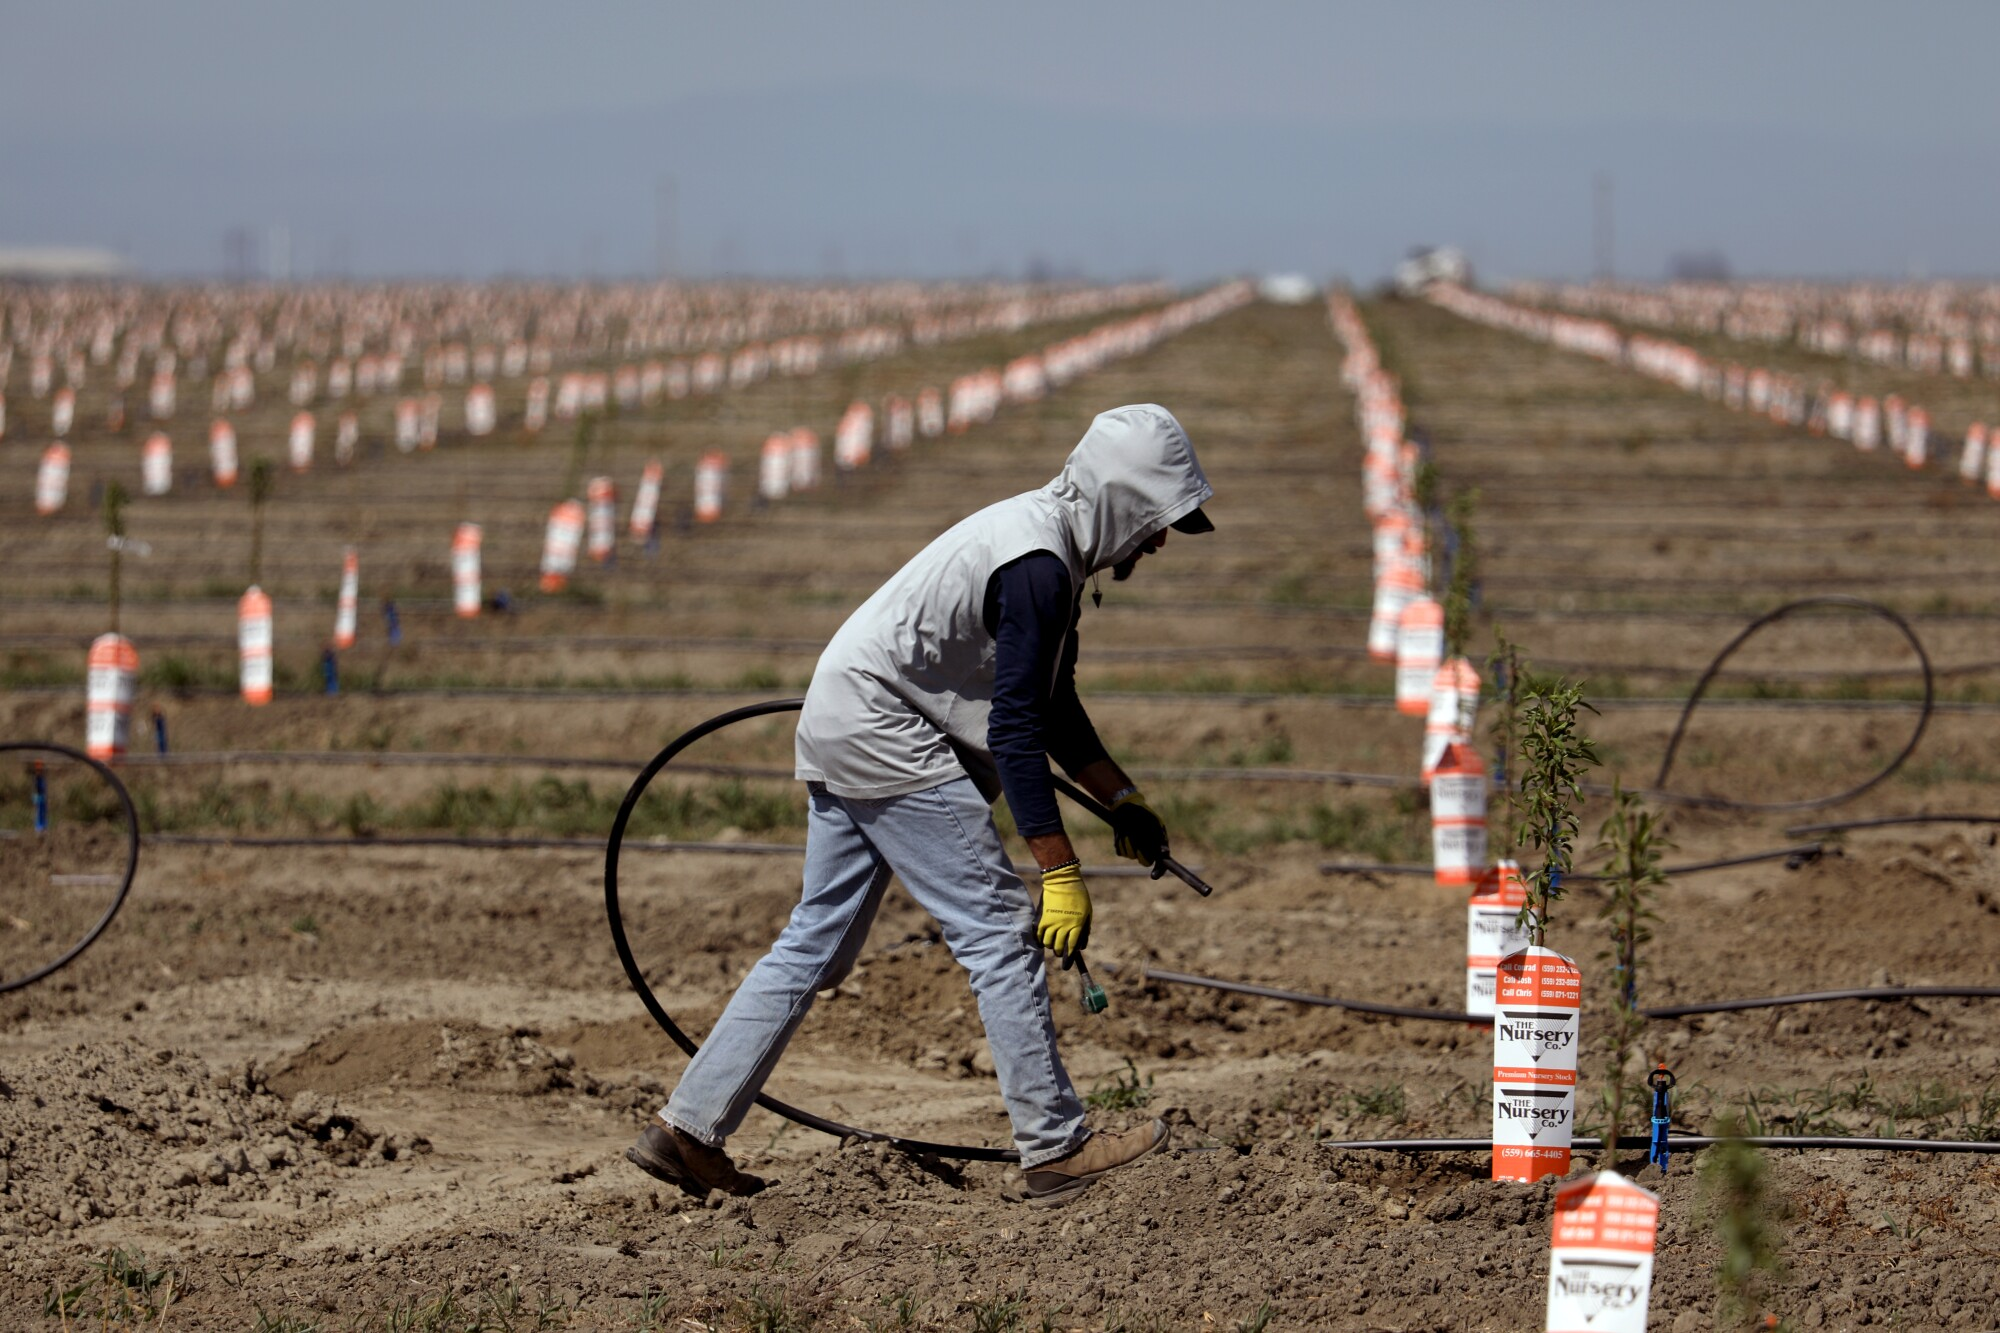 A worker sets up irrigation lines to water almond tree rootstocks.